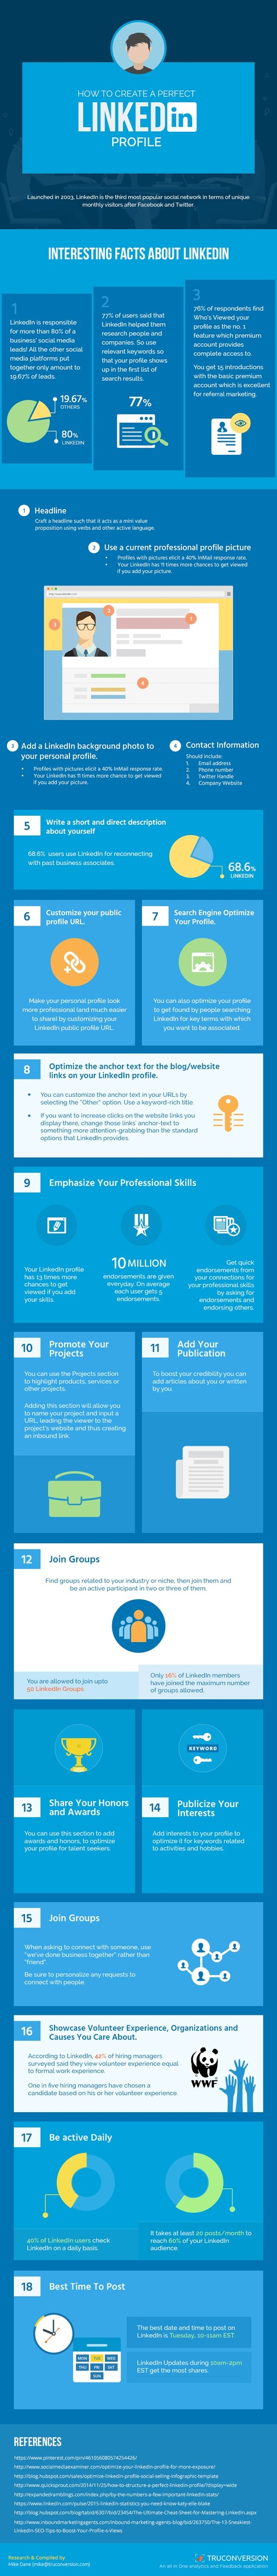 Perfect LinkedIn Profile Infographic | Personal Branding Using Scoopit | Scoop.it